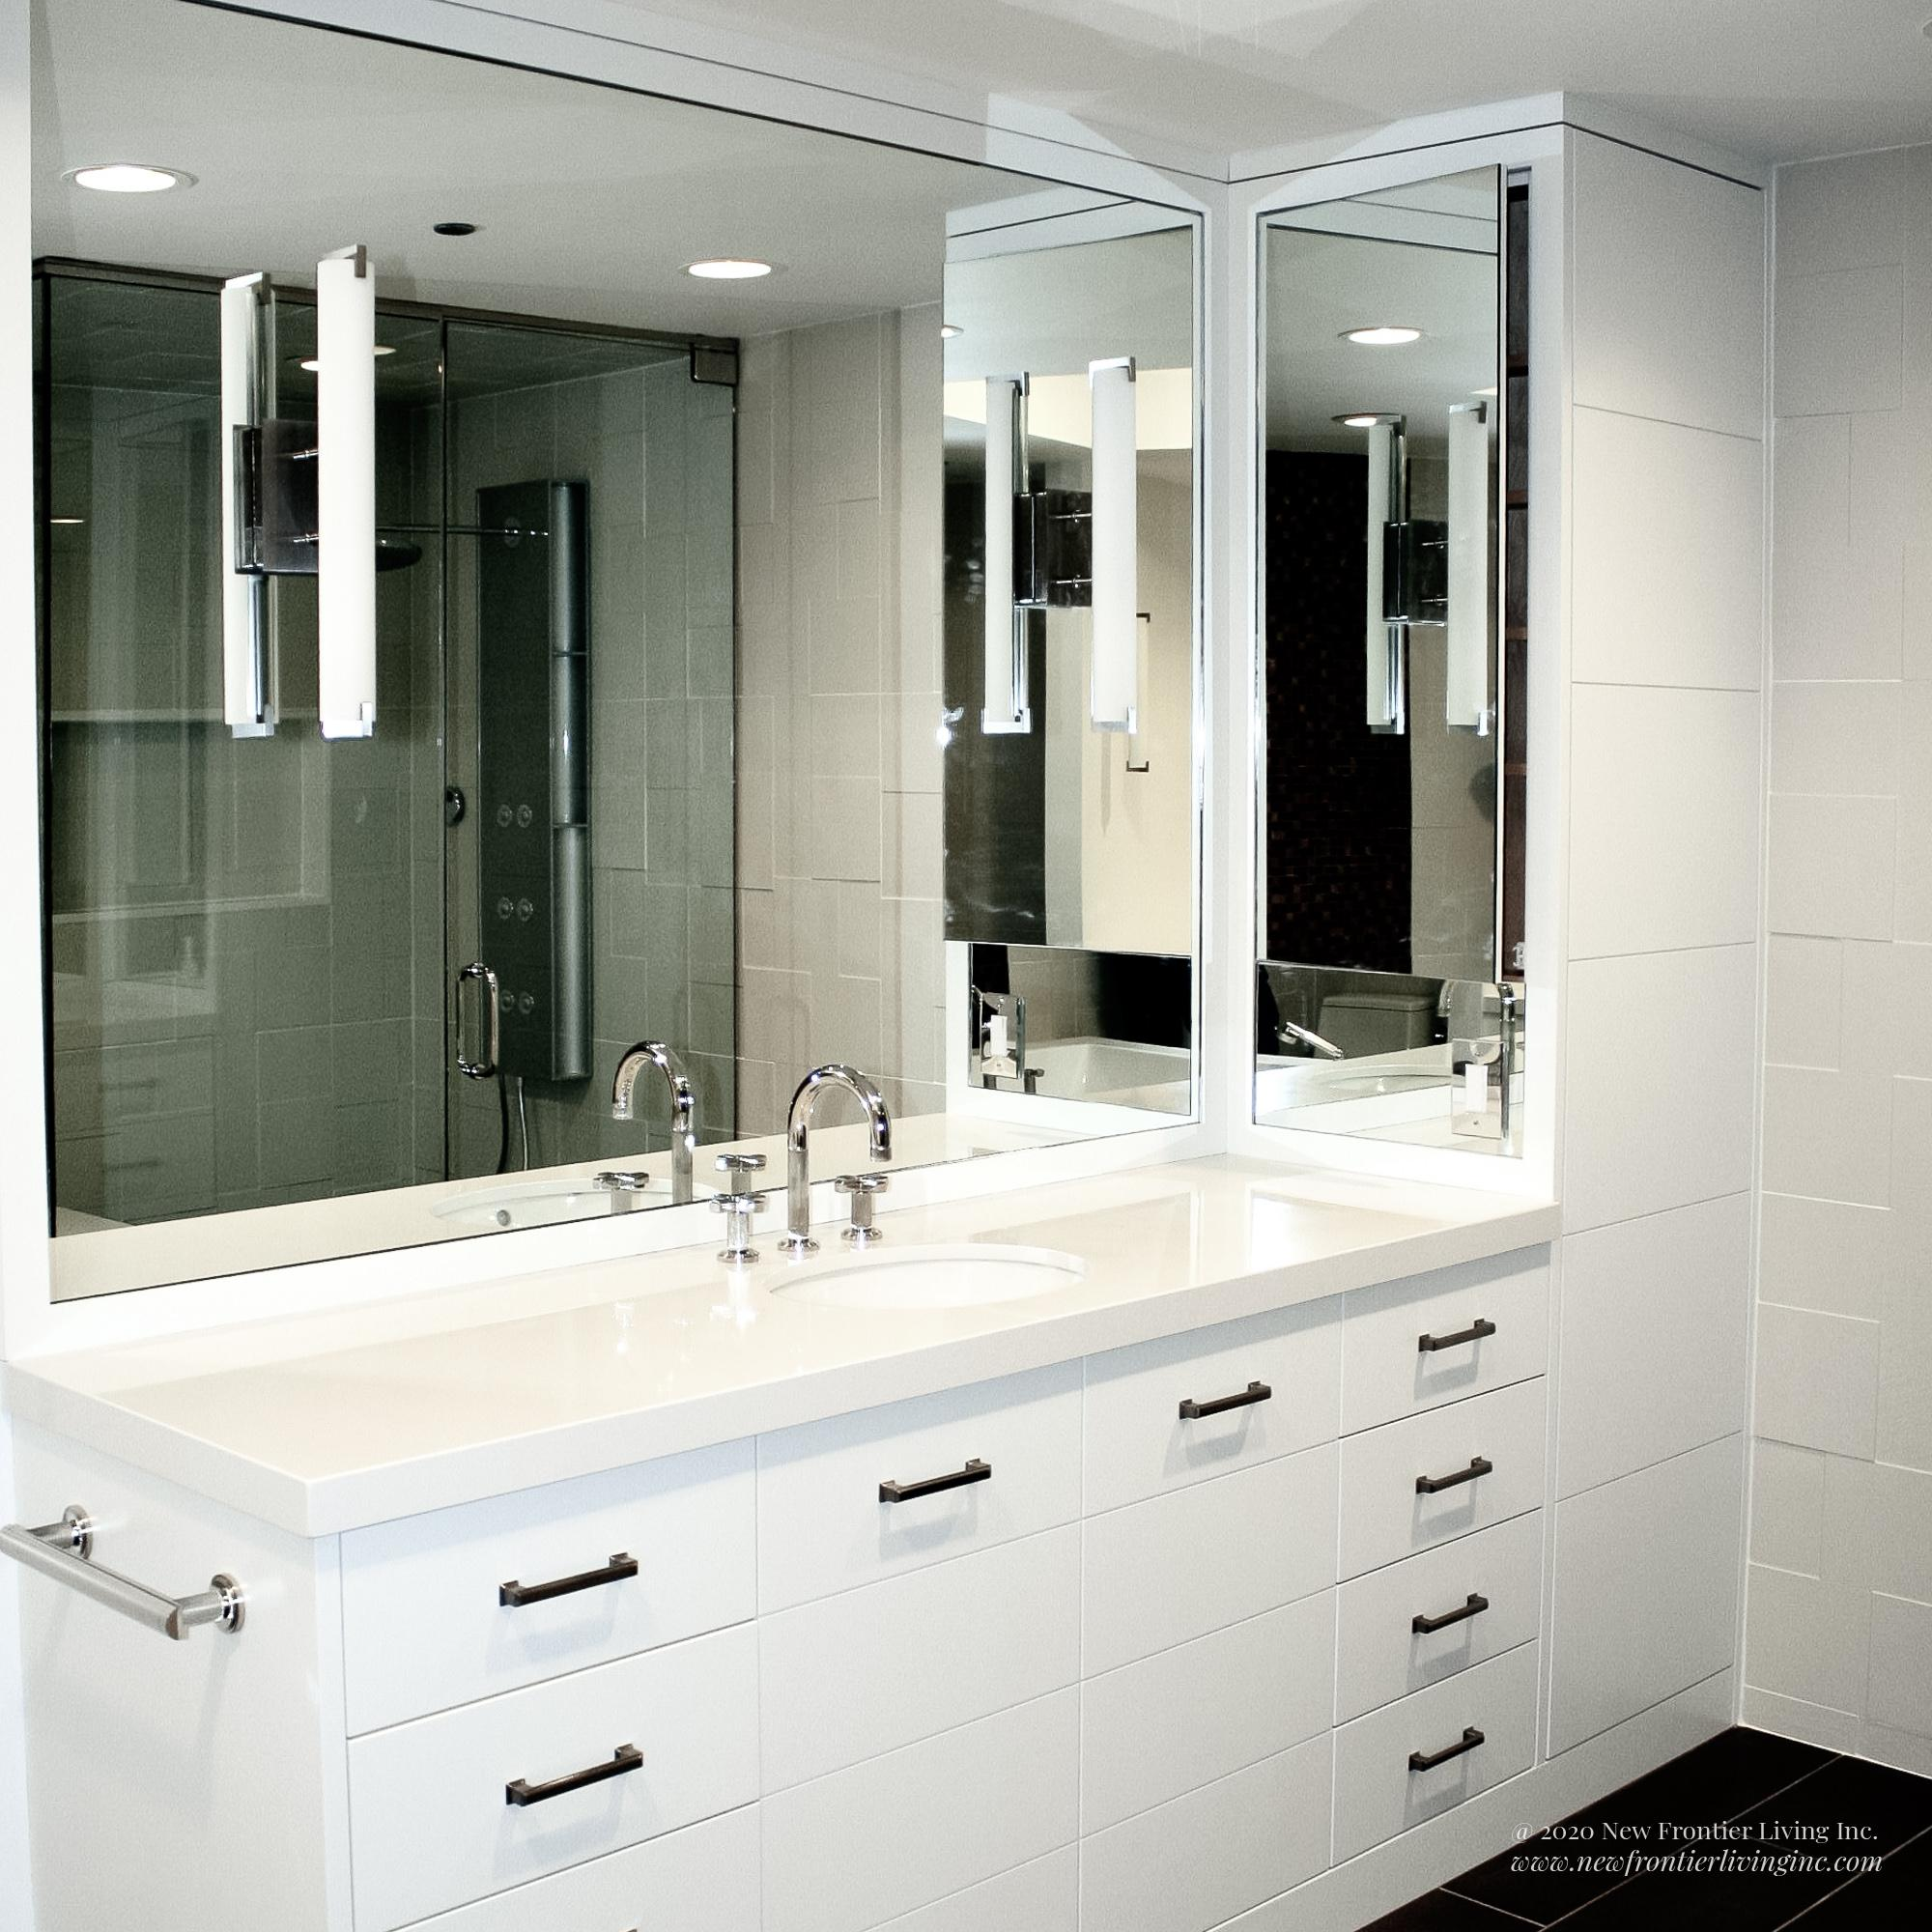 White bathroom installed by NFL Inc. mirror and vanity with sink view